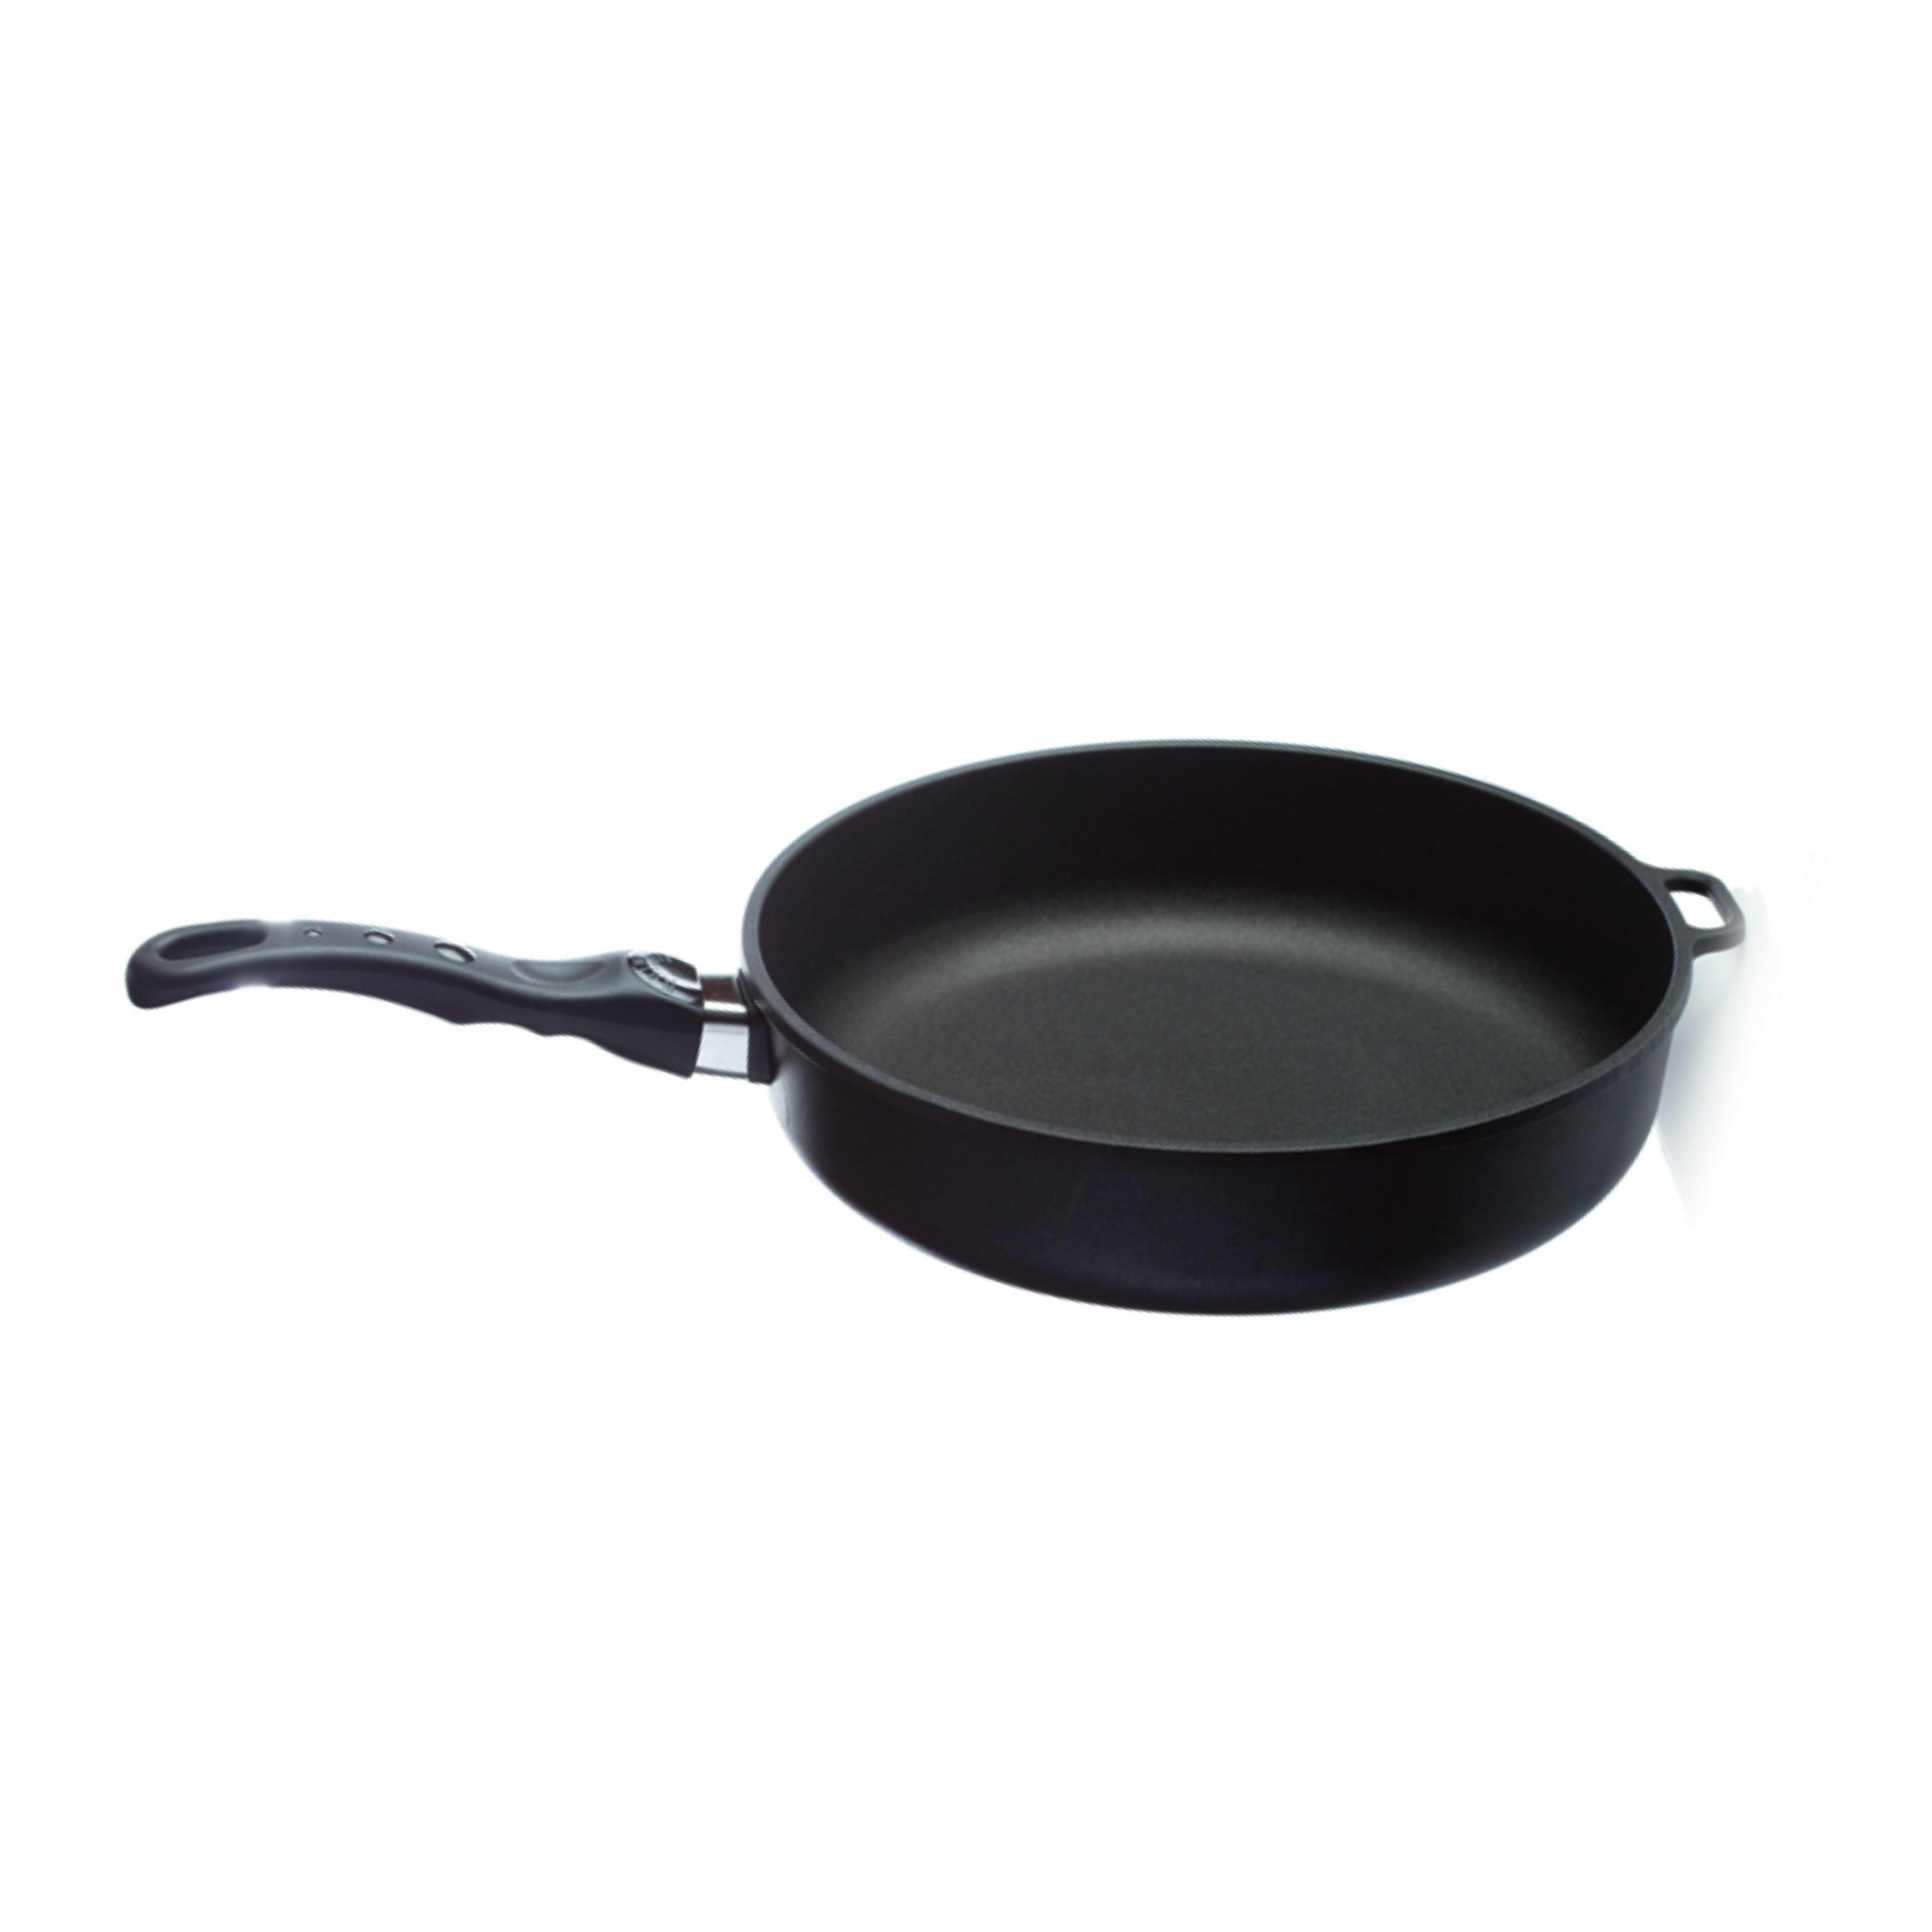 HIGH RIM FRYING PAN 28x7    This deep set 28x7cm size is great for cooking medium to larger sized dishes. Young Living's titanium pans are premium cookware products that cook evenly without sticking, won't warp or lose their shape, and don't have Teflon coating. The titanium coating allows you to cook with little or no fat and is non-porous. The bases are made of cast aluminum, which conducts heat seven times faster than iron or steel. The patented handles have no screws or rivets to loosen and fall off. All handles, lids, and knobs are ovenproof up to 500° F.   Click here   to learn more about this product.